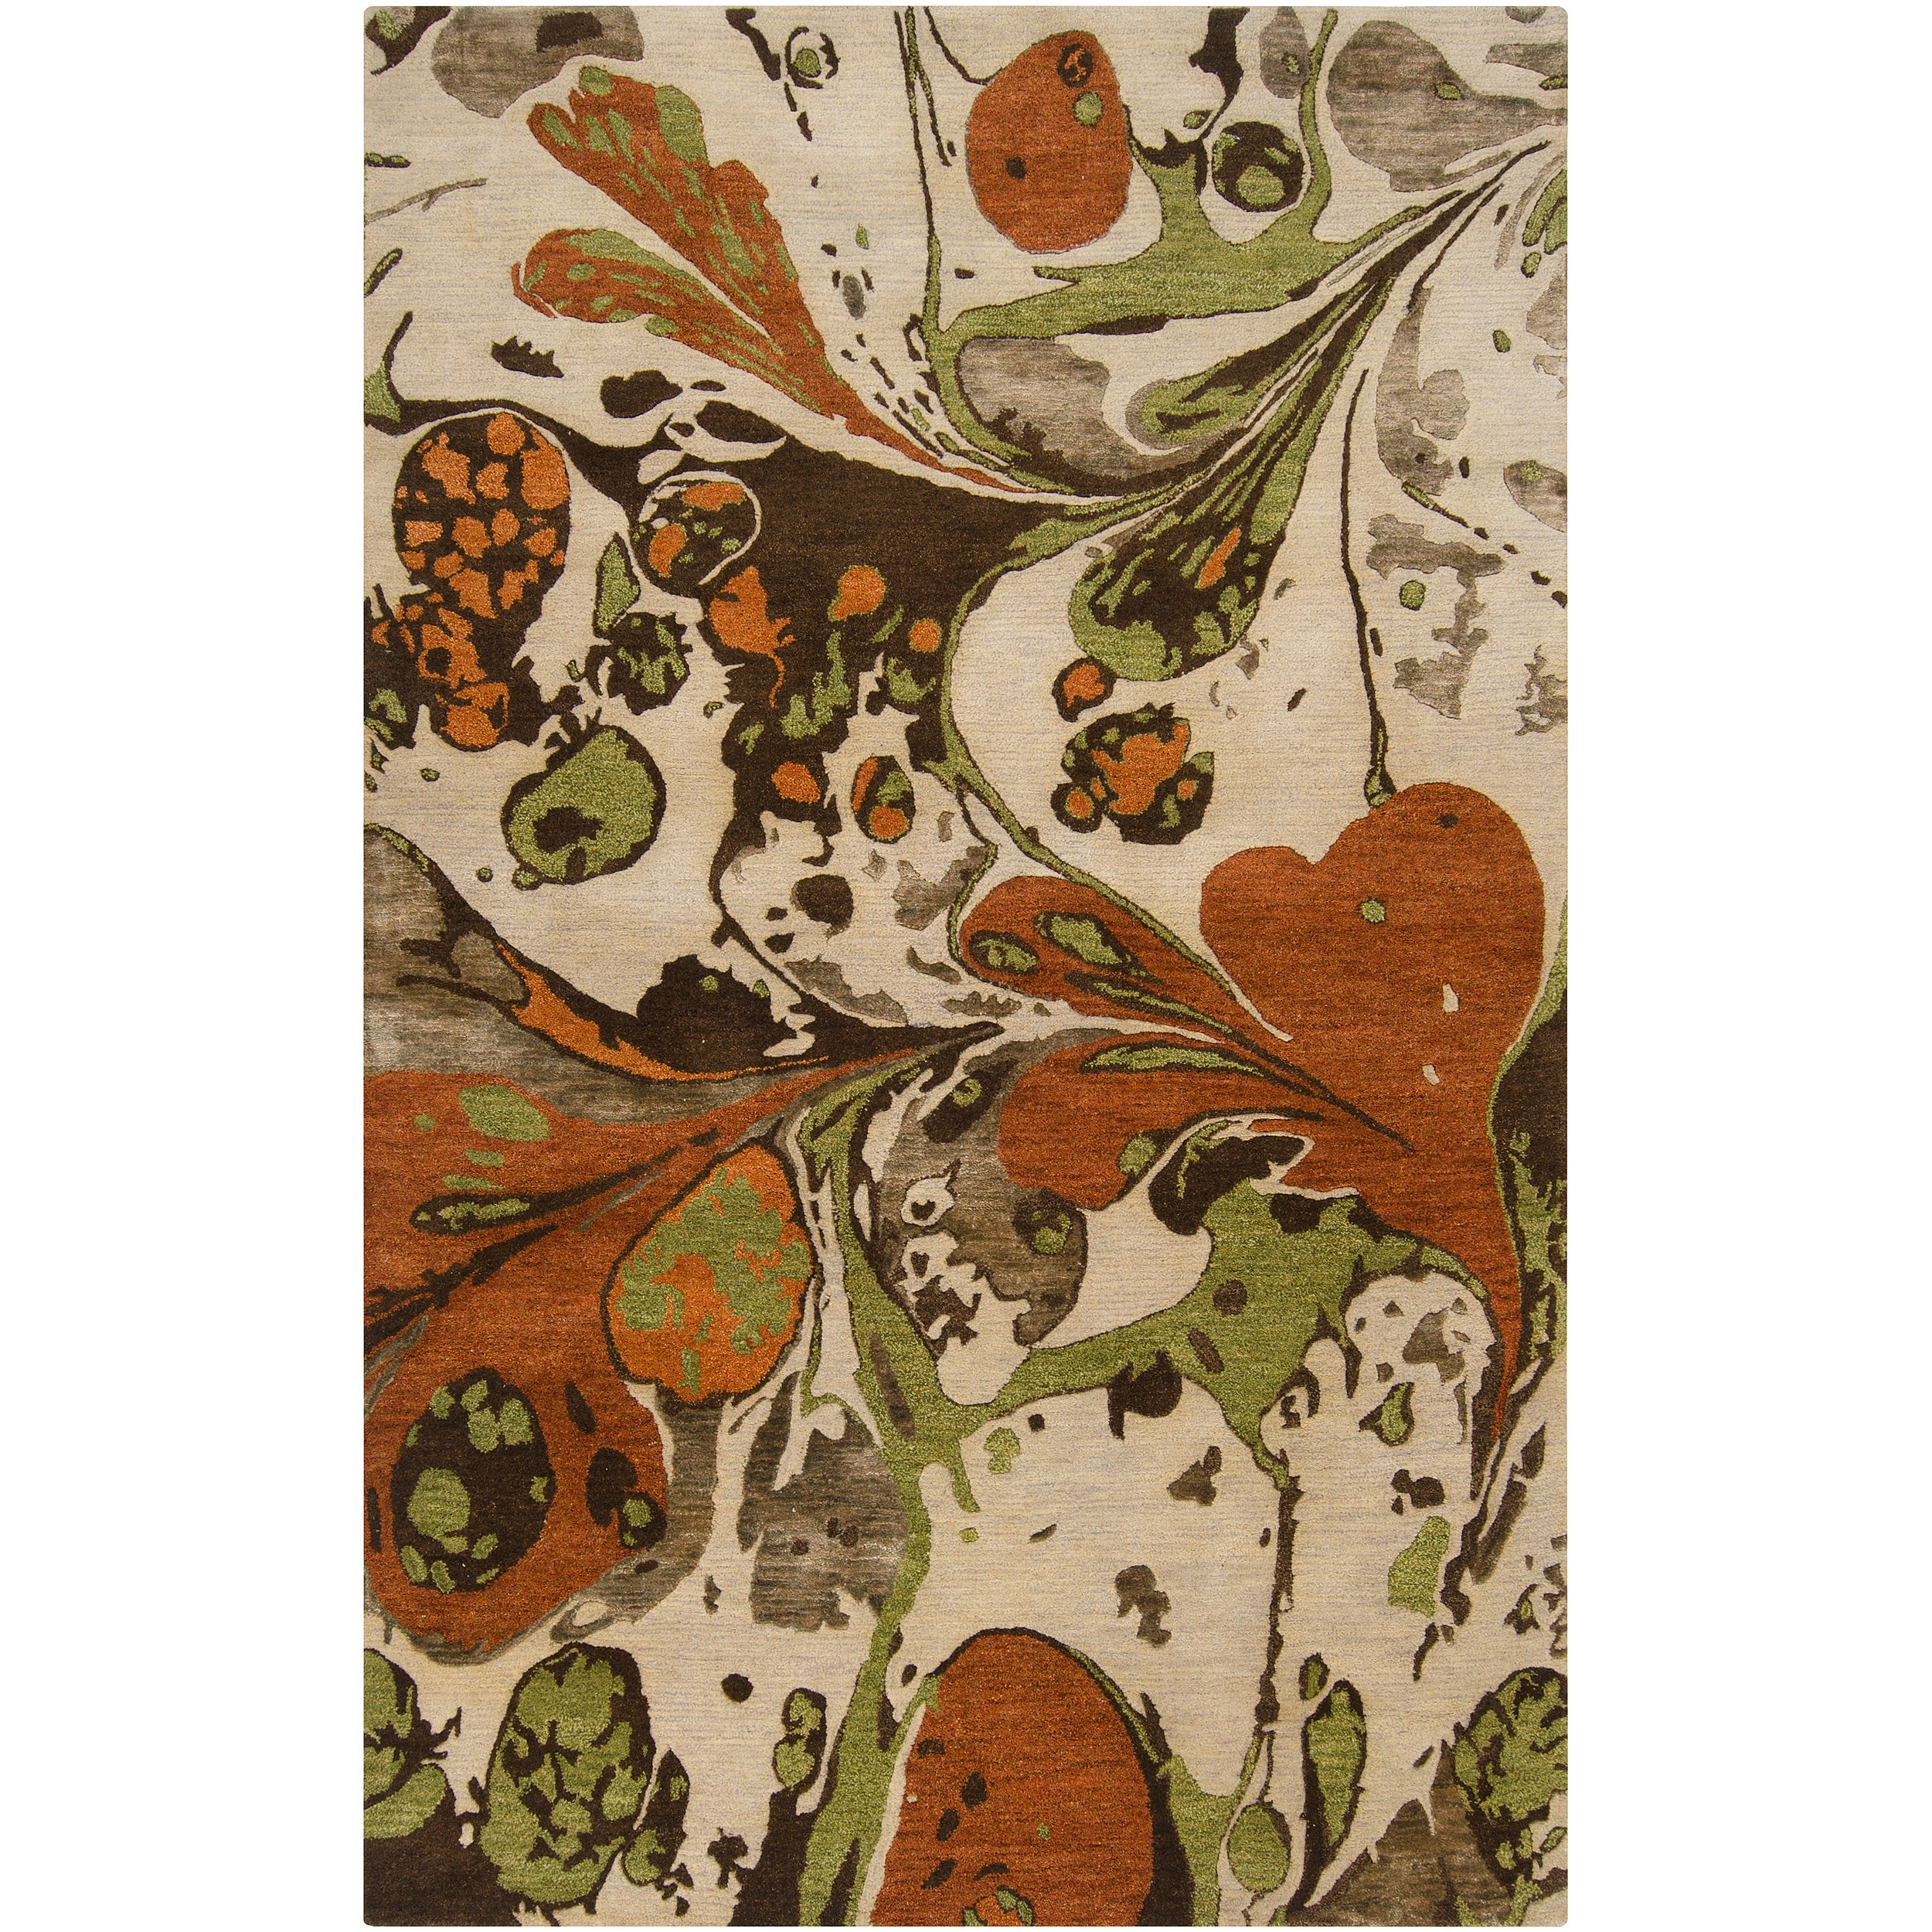 Hand-tufted Contemporary Multi Colored Poodle New Zealand Wool Abstract Area Rug - 8' x 11'